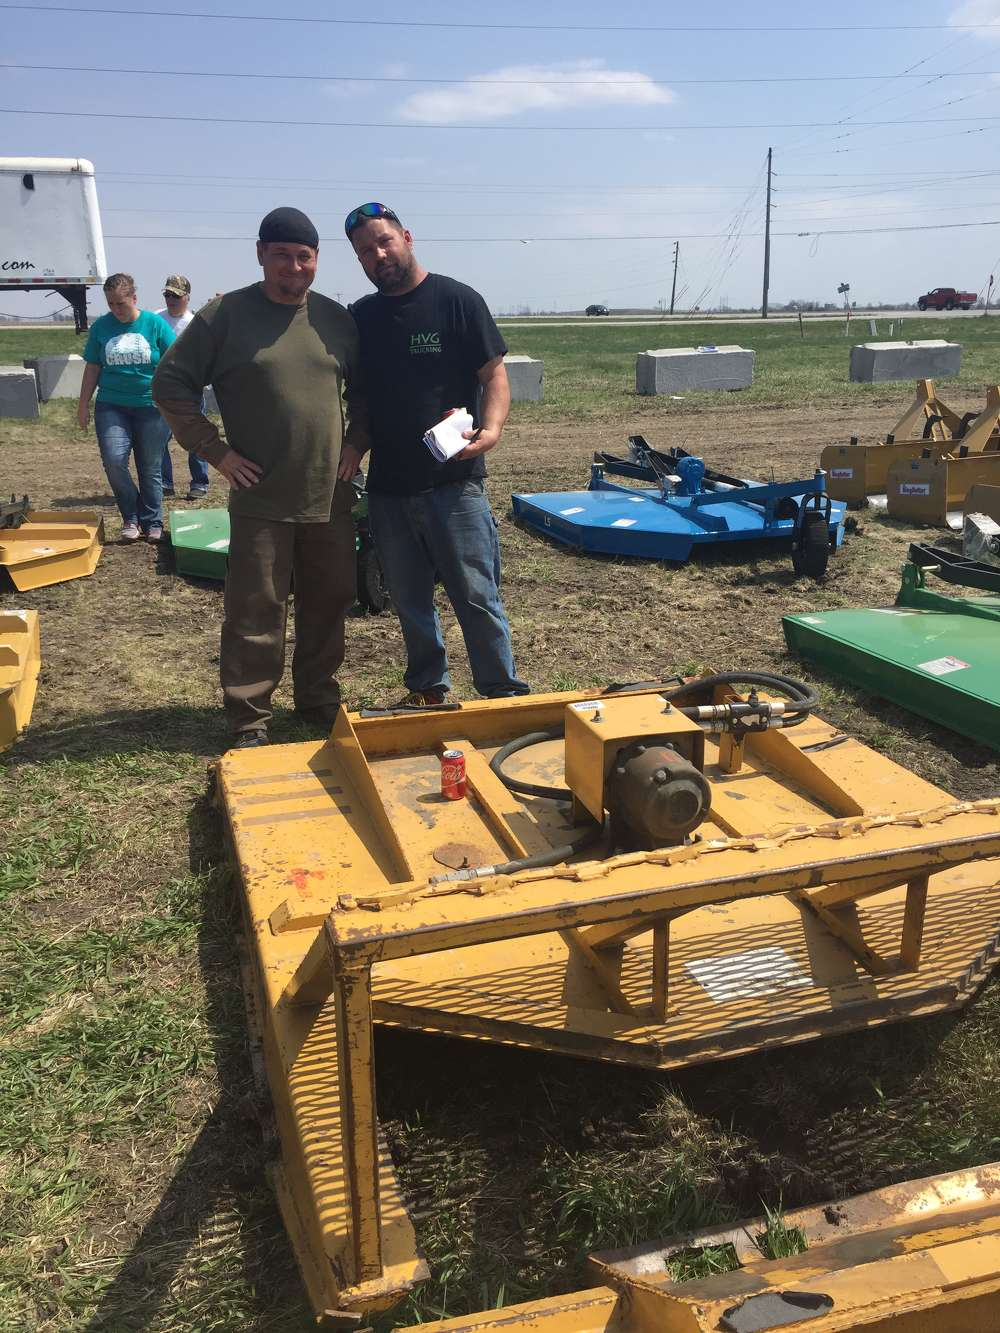 Chad Moret (L) and Josh Gillespie of Des Moines, Iowa, inspect the farm and construction equipment attachments at the Ottumwa, Iowa, auction.